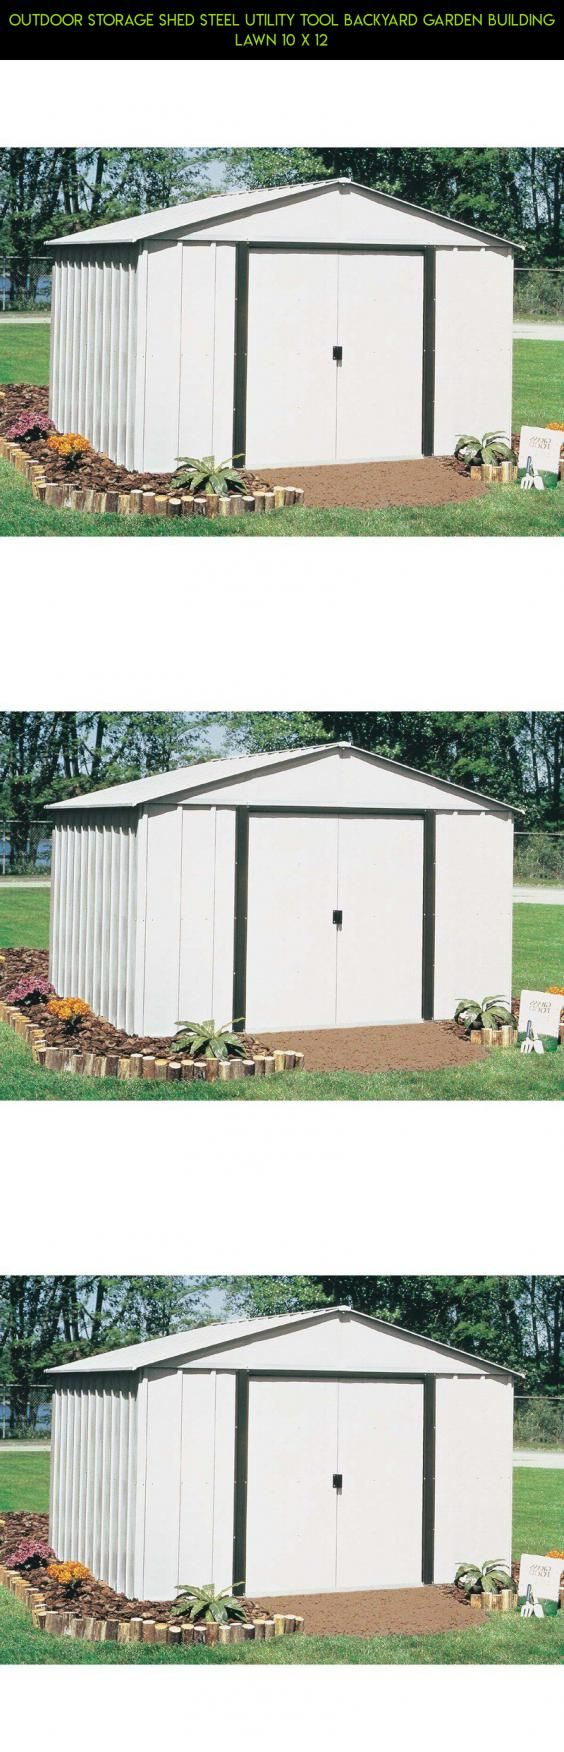 Outdoor storage shed steel utility tool backyard garden building lawn 10 x 12 10x12